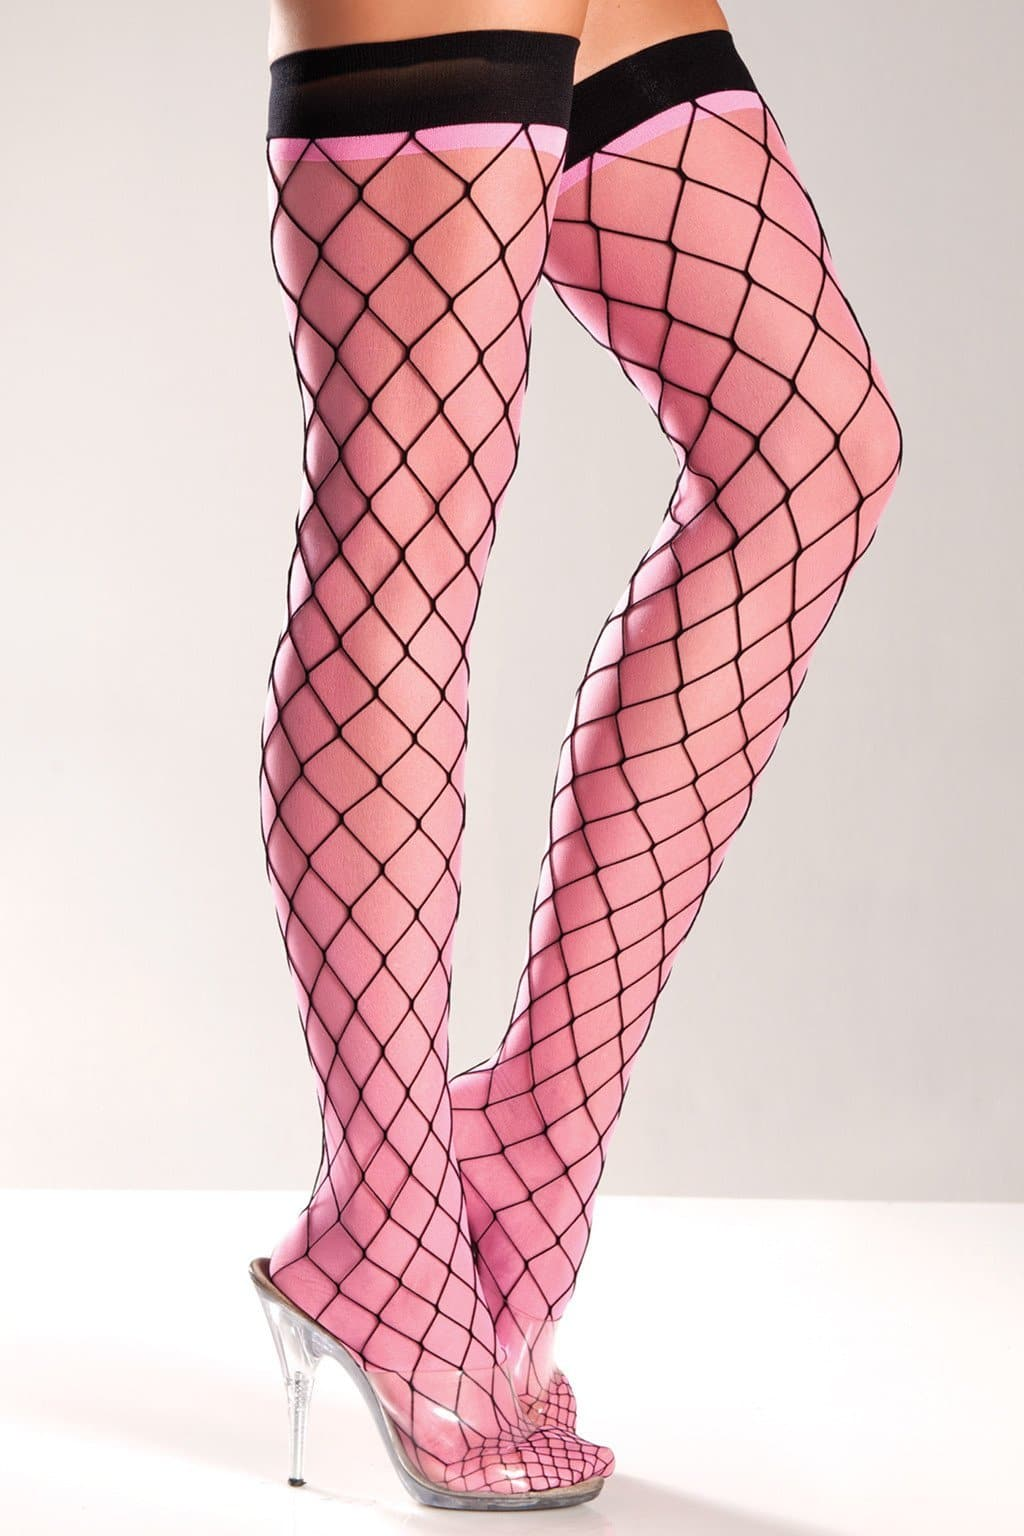 Be Wicked BW579 Spandex Fence Thigh Highs with Sheer Pink Underlining NWT One Size